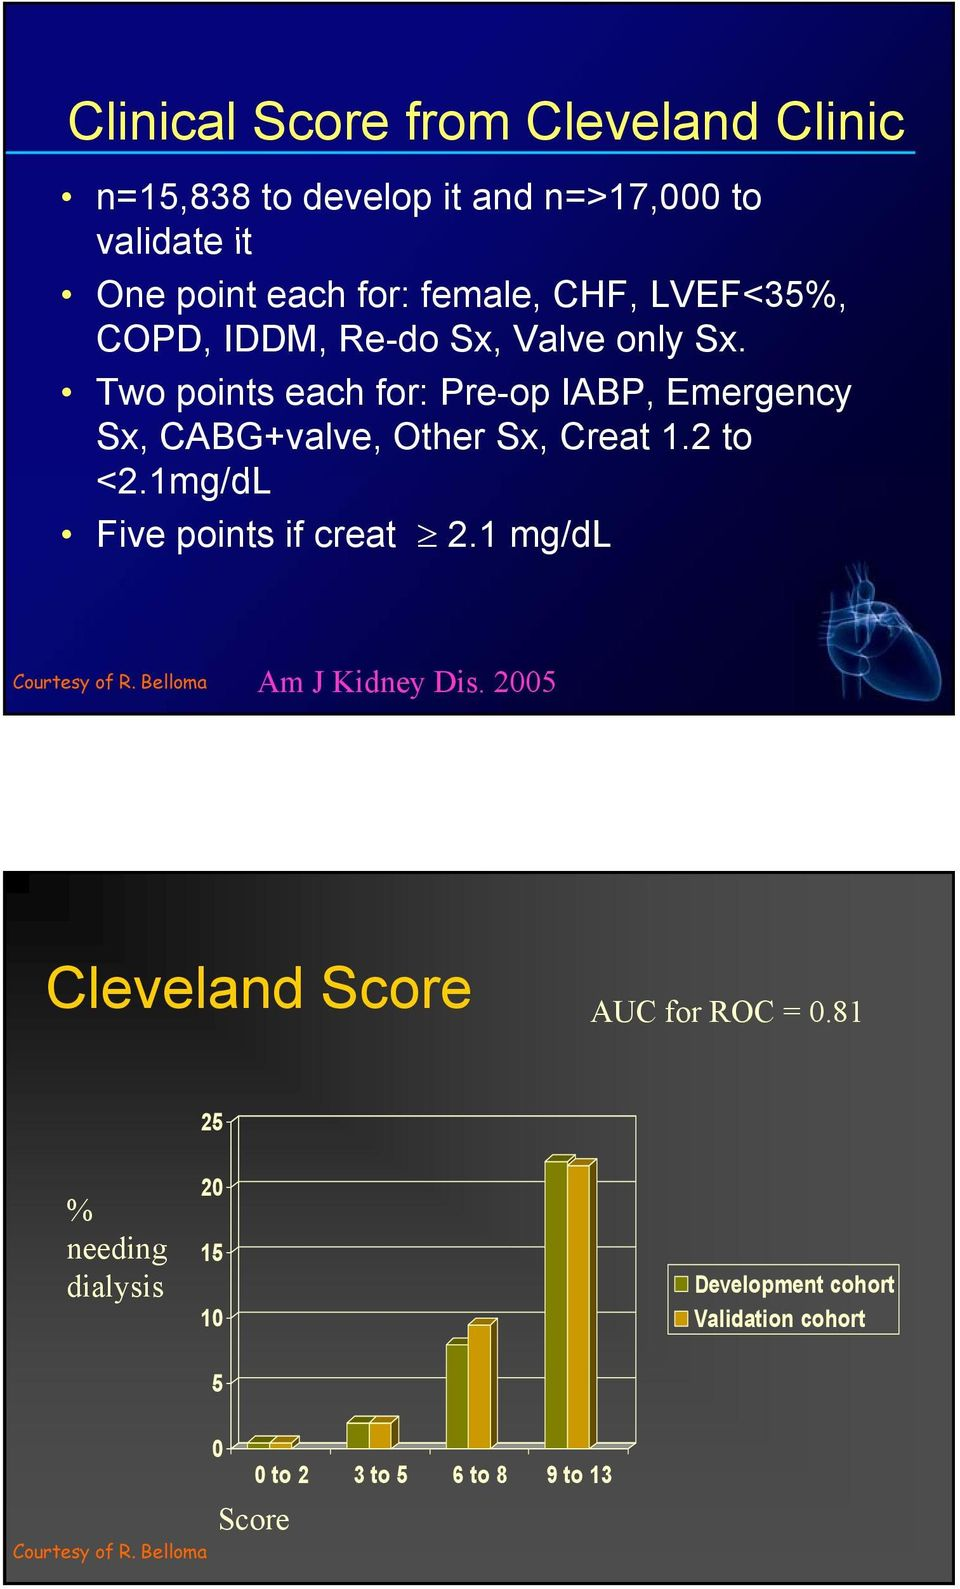 2 to <2.1mg/dL Five points if creat 2.1 mg/dl Courtesy of R. Belloma Am J Kidney Dis. 2005 Cleveland Score AUC for ROC = 0.